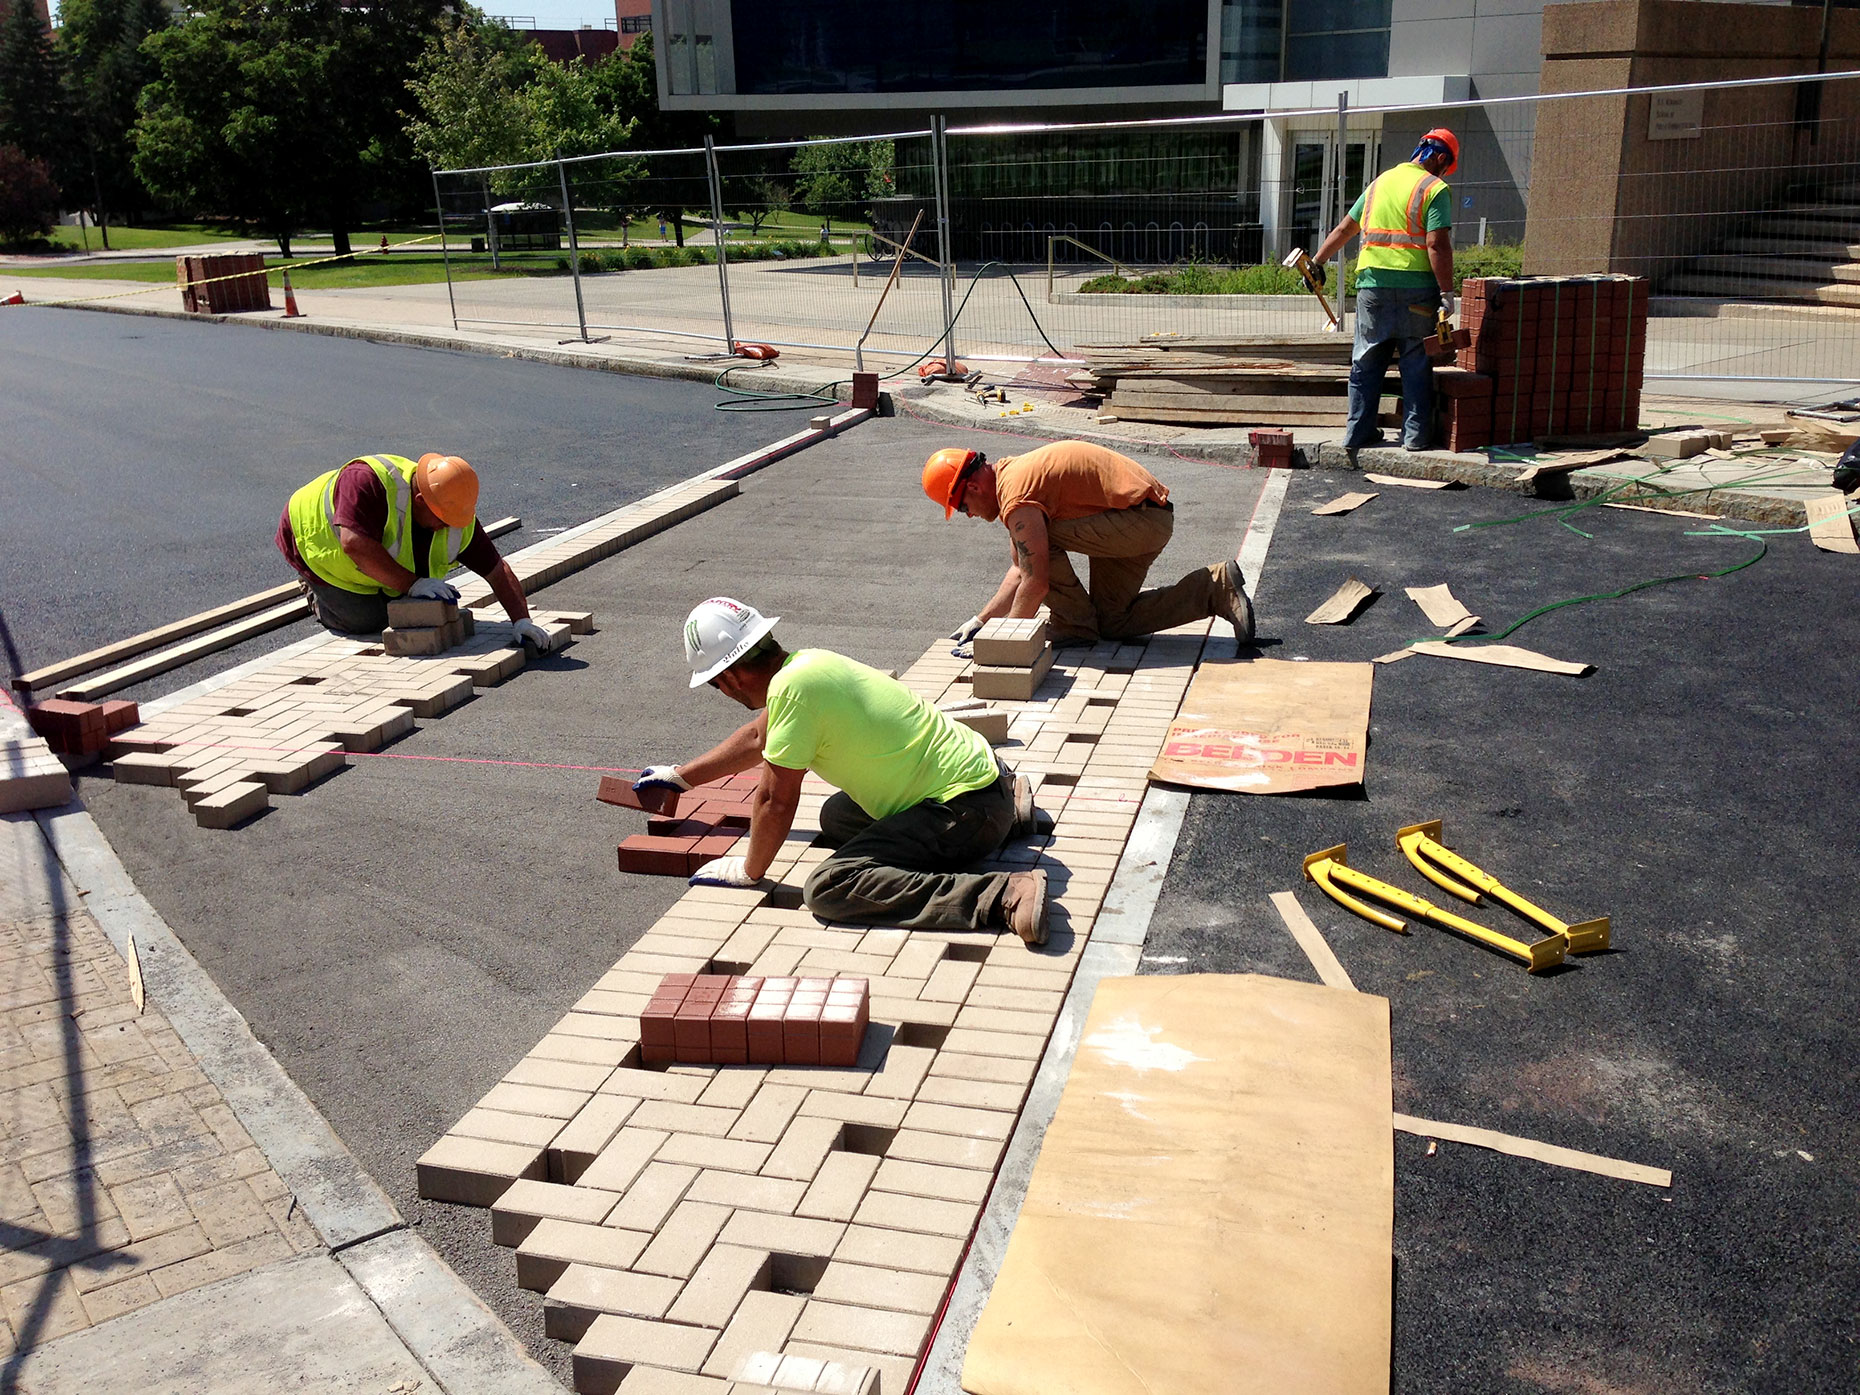 Workers aligning bricks